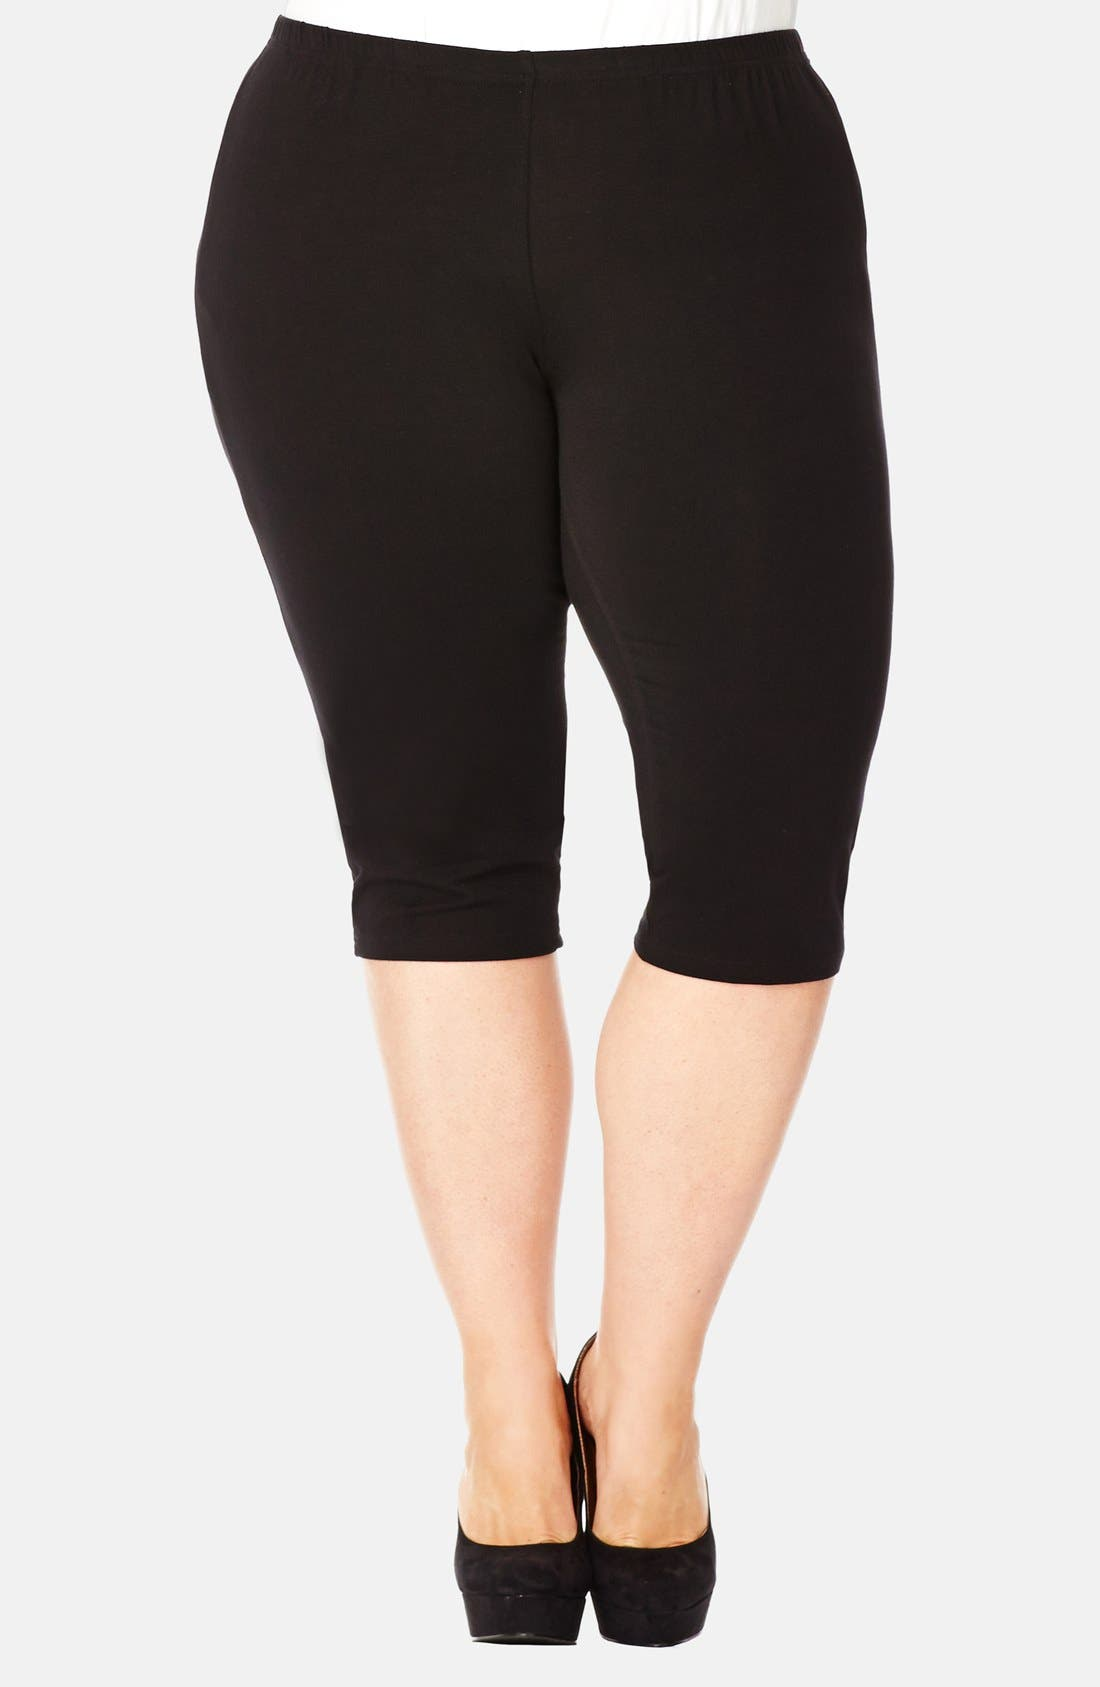 Alternate Image 1 Selected - City Chic Three-Quarter-Length Leggings (Plus Size)